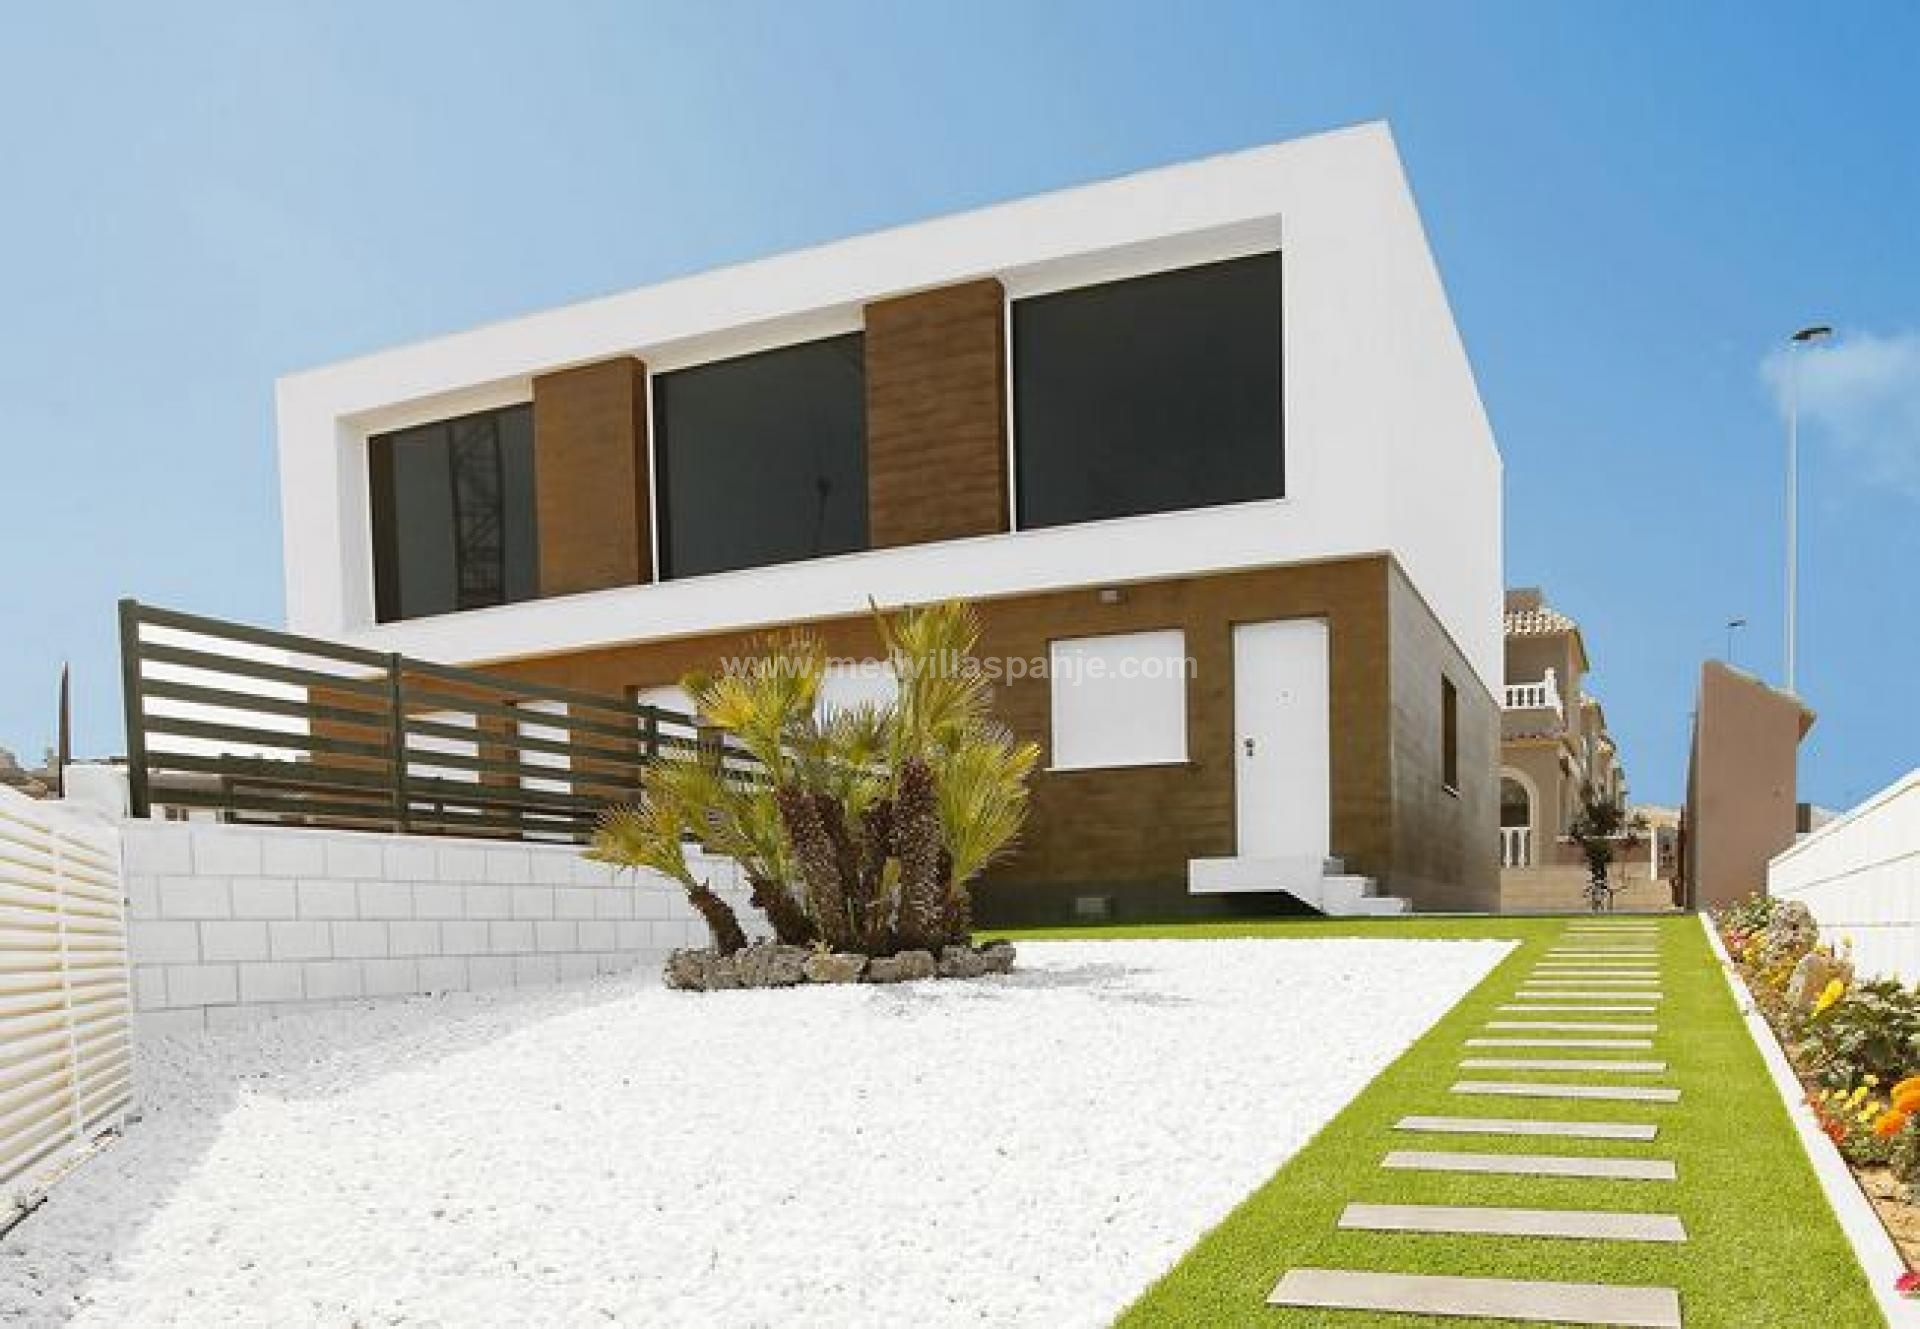 3 bedroom Terraced villa in Gran Alacant - New build in Medvilla Spanje